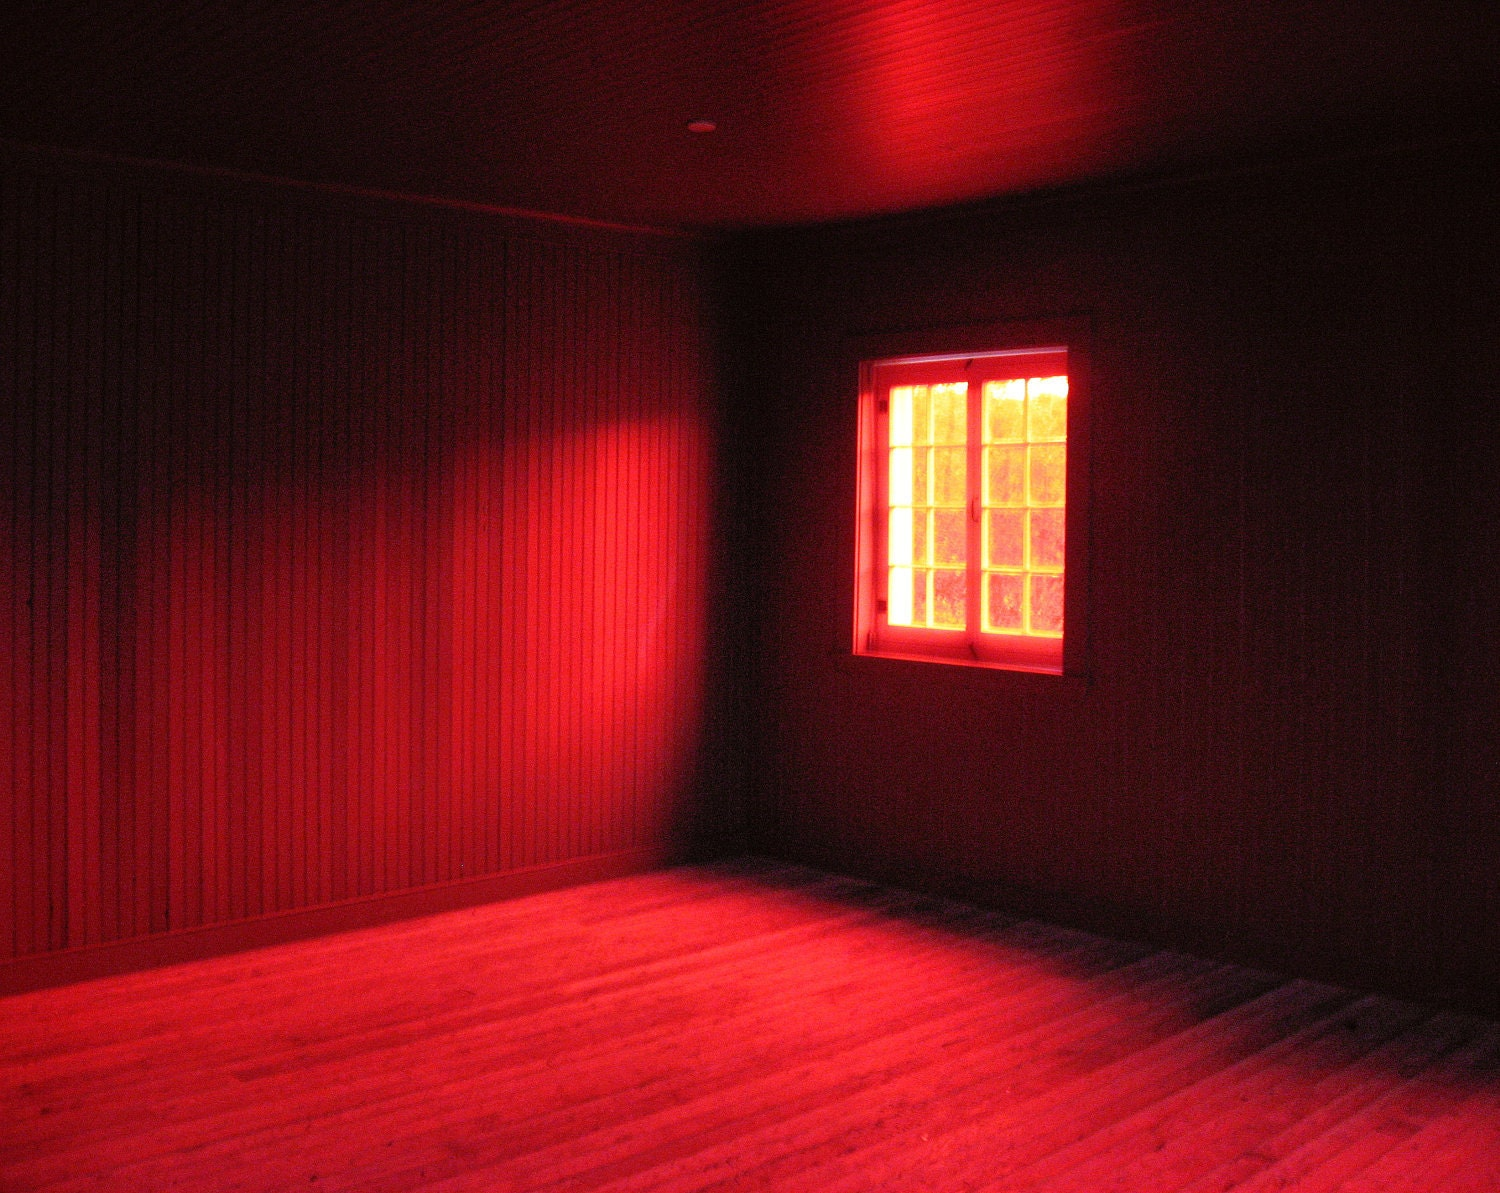 essays on the red room It is not rare to encounter effective and incisive uses of space within nineteenth century literature the famous novel _jane eyre_ by charlotte brontë is one of the.